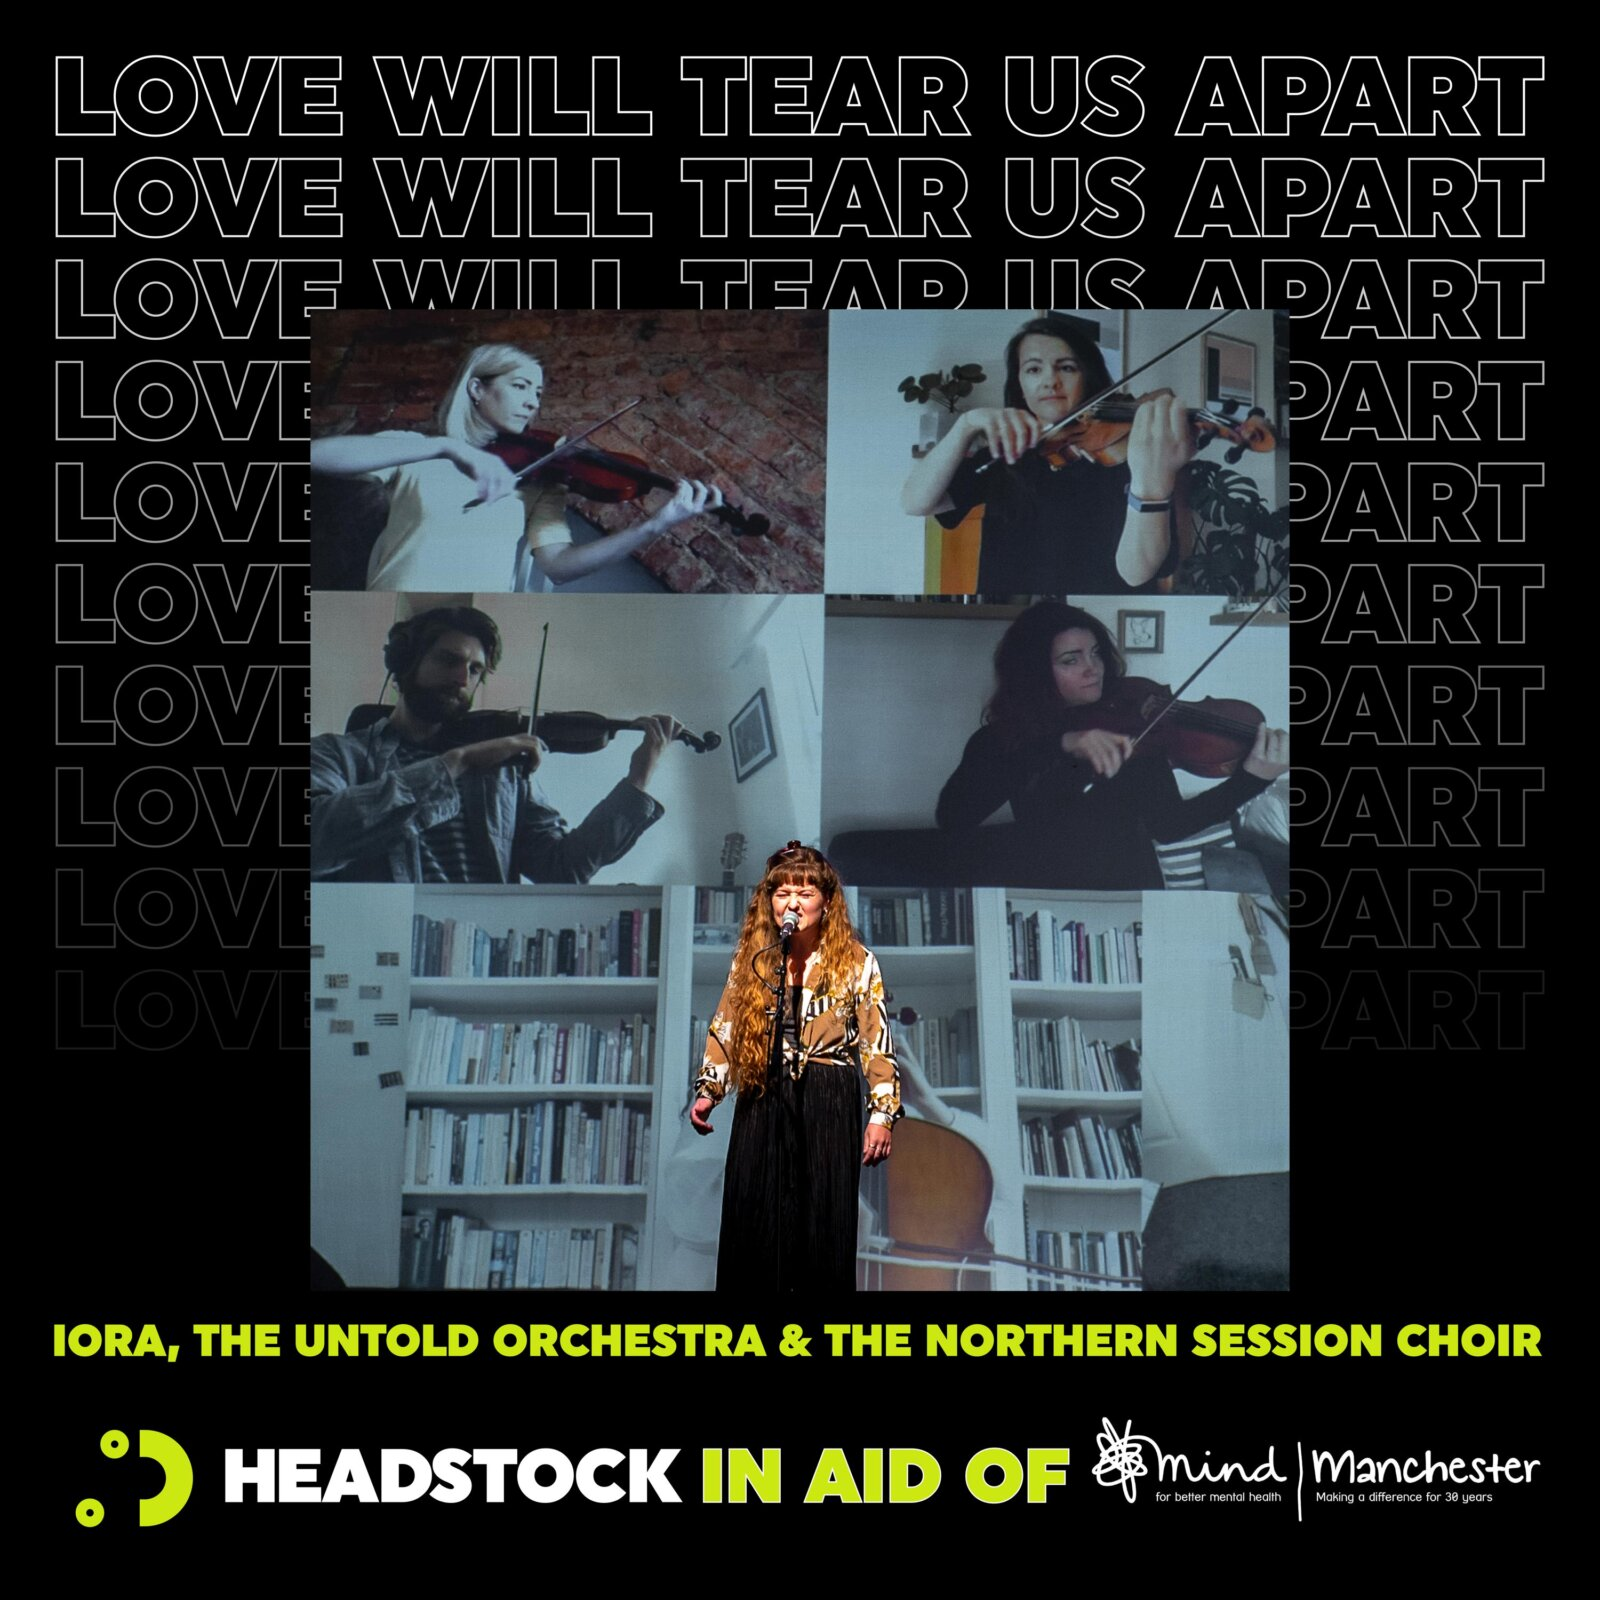 Headstock release cover of Joy Division's 'Love Will Tear Us Apart' to mark Ian Curtis' 64th birthday, The Manc